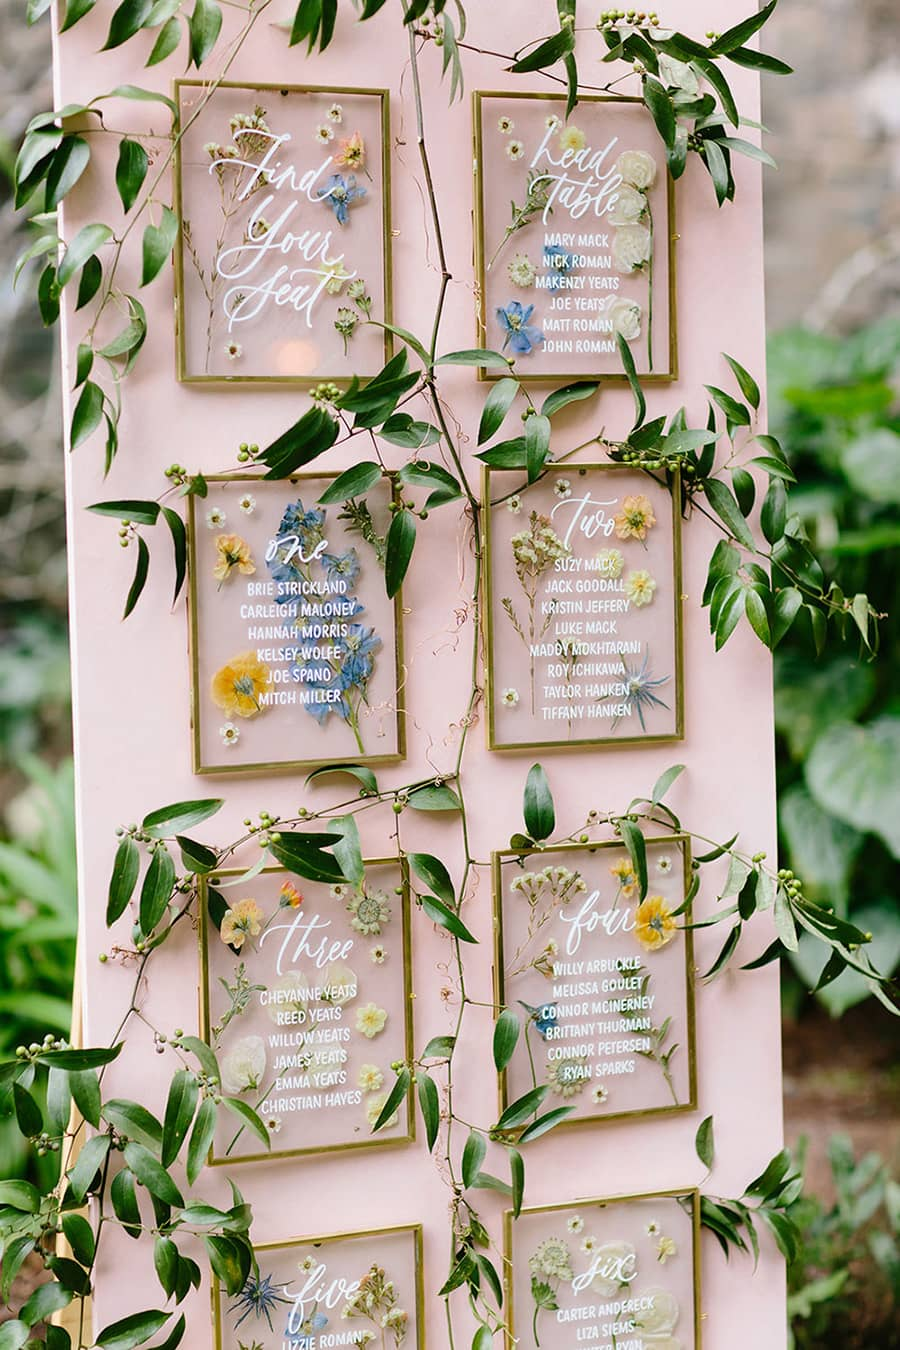 Spring pastel wedding reception seating chart featuring a blush pink backdrop, gold frames, pressed flowers and trailing greenery | Photography: Melia Lucida via 100 Layer Cake